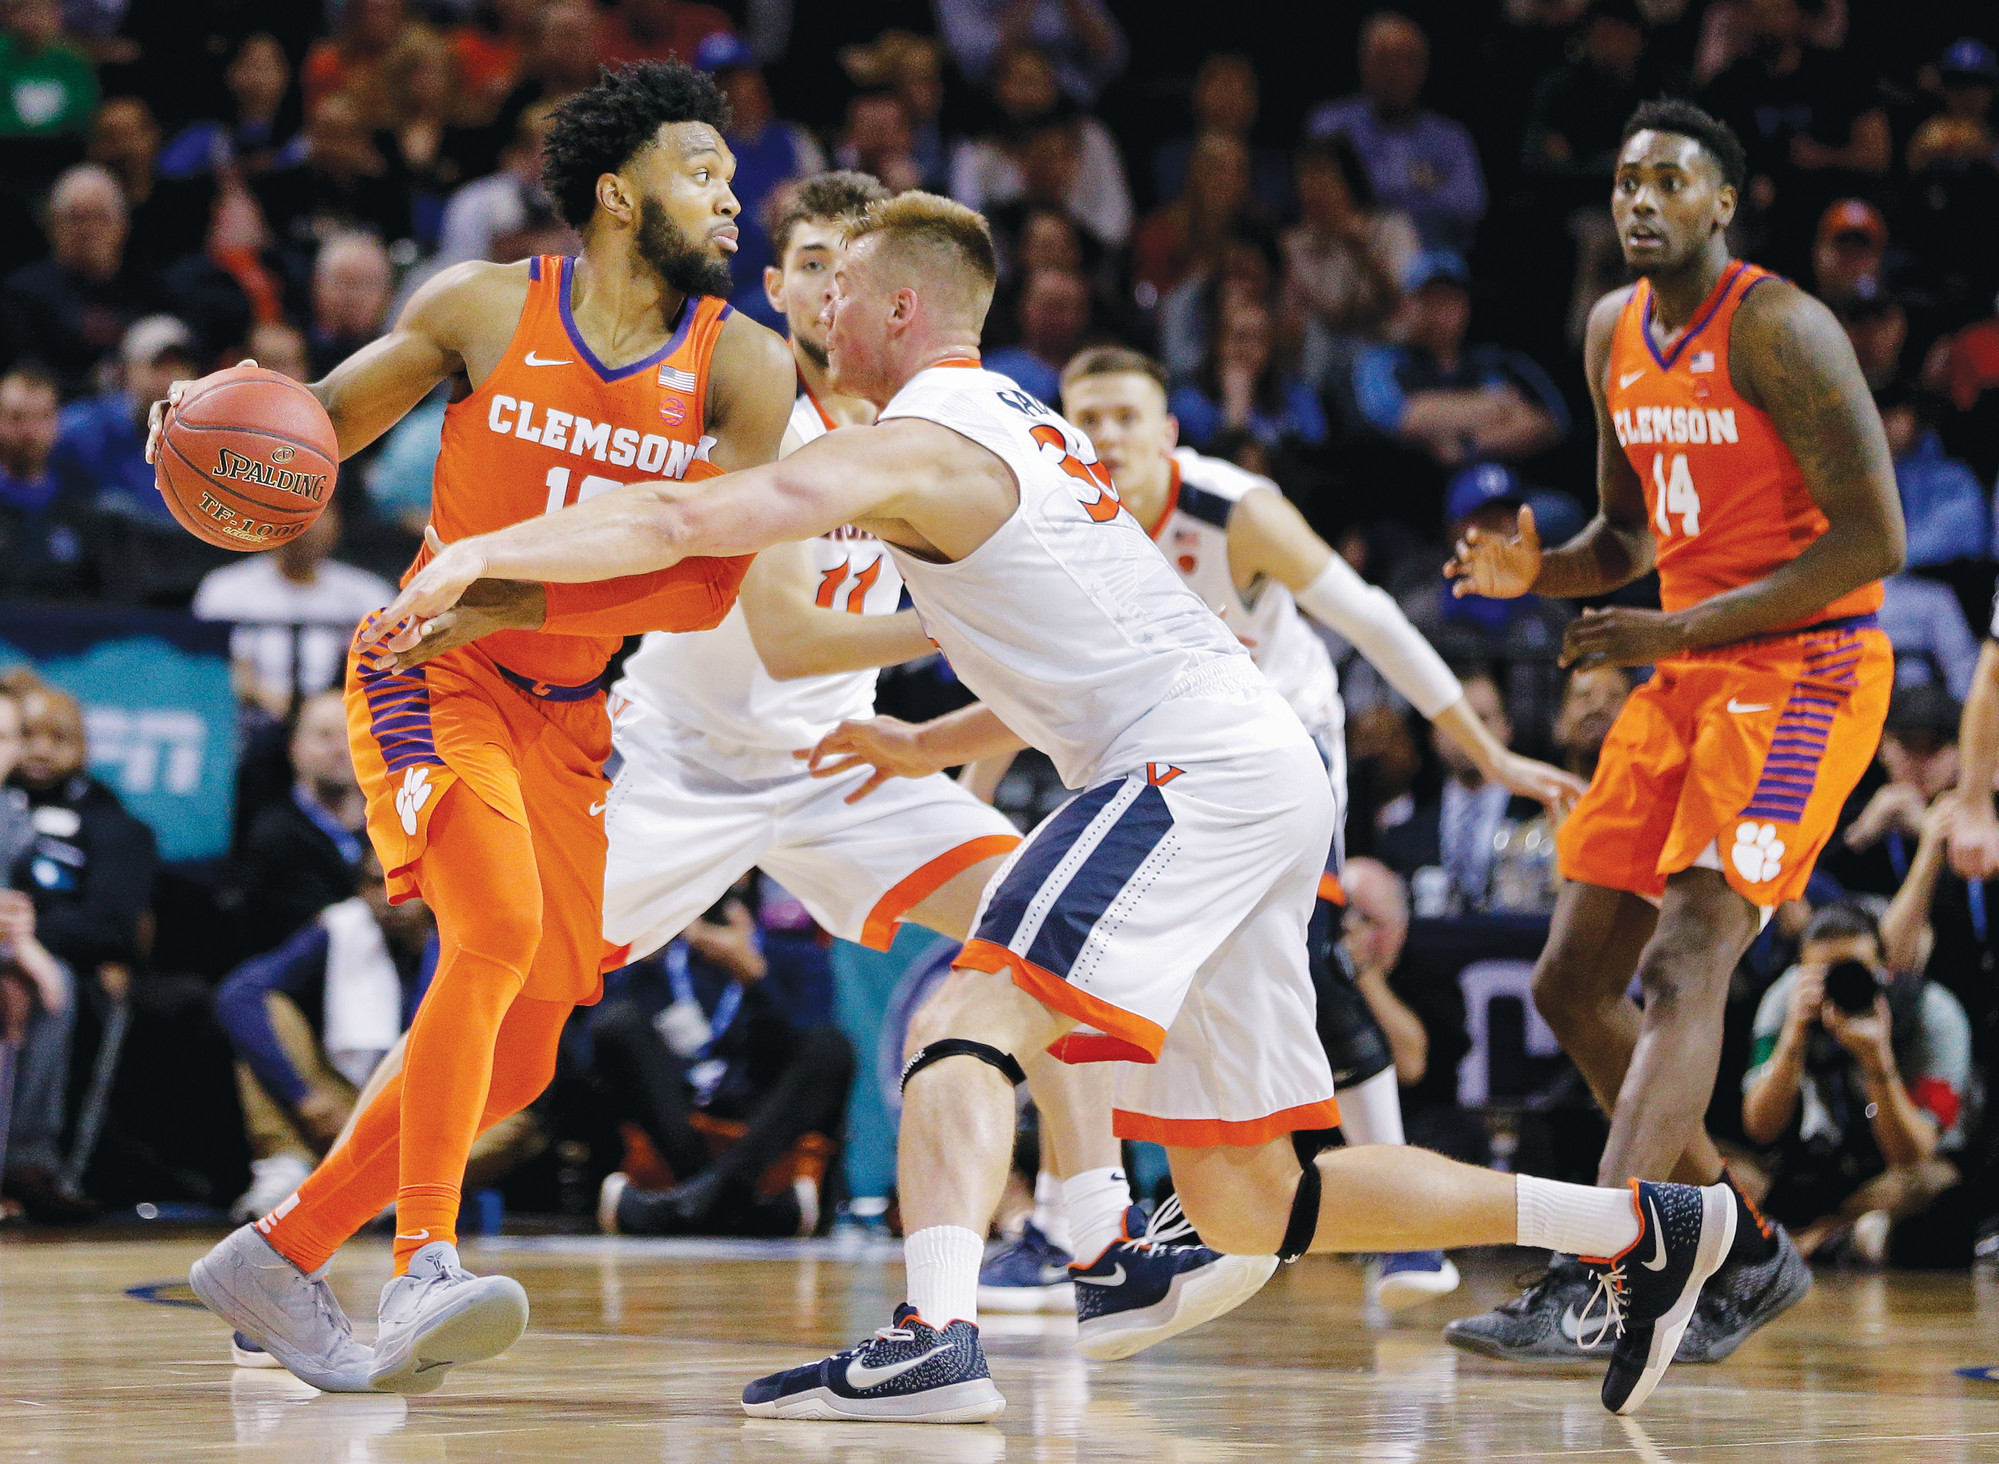 Clemson guard Gabe DeVoe (10) drives against Virginia center Jack Salt (33) during the second half of the Cavaliers' 64-58 victory in an ACC tournament semifinal on Friday in New York. Clemson takes on New Mexico State in the Midwest regional on Friday.